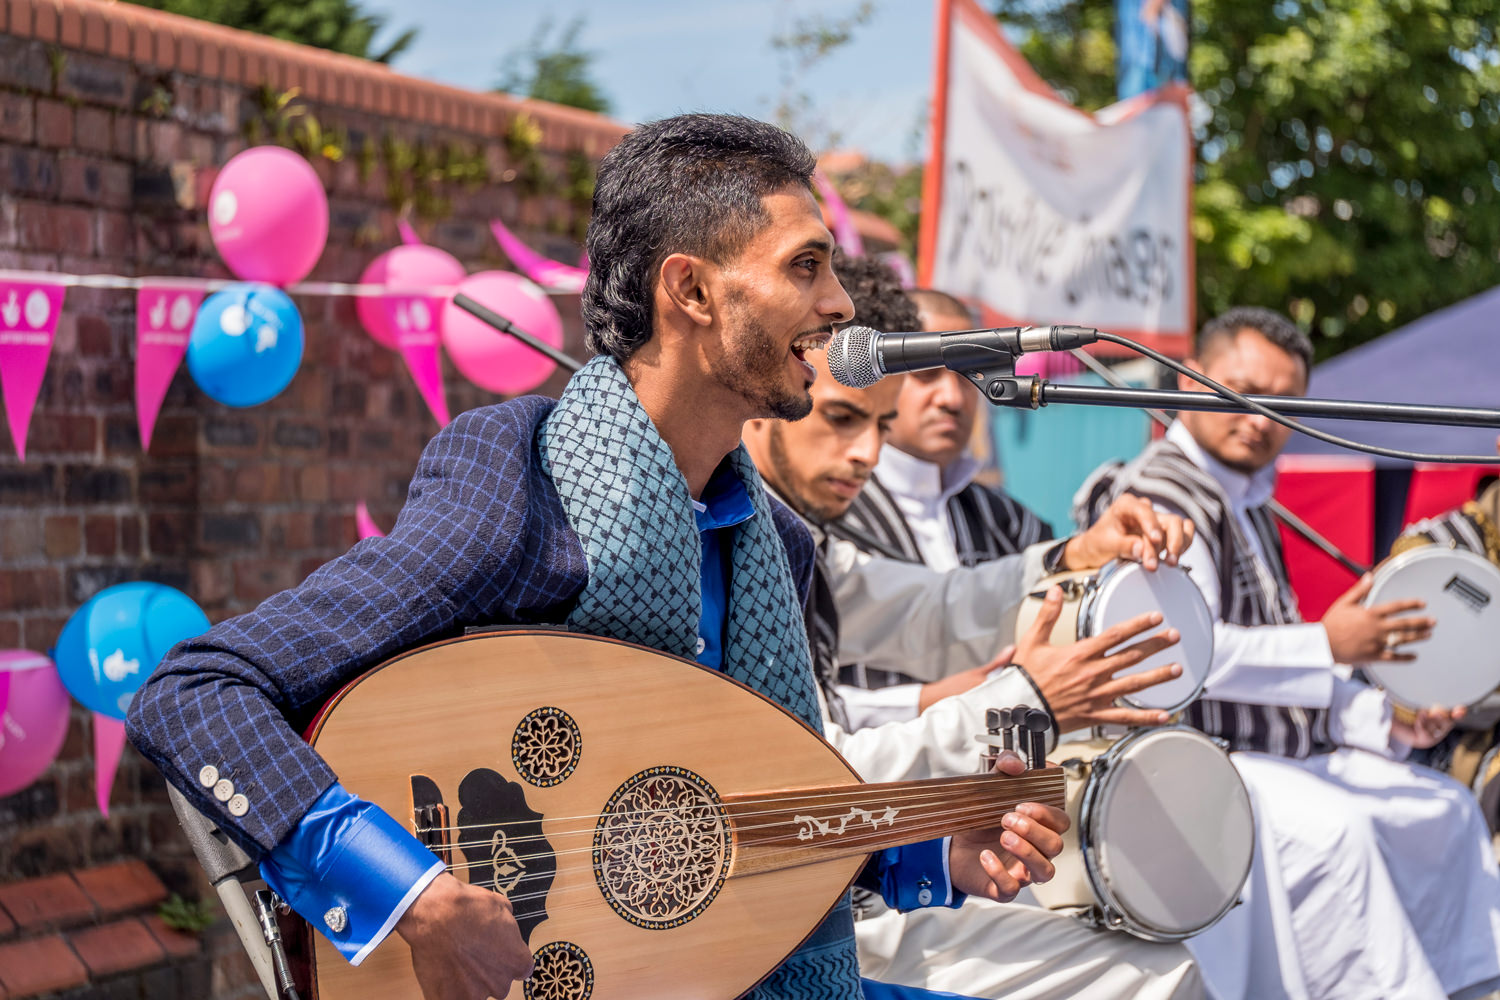 A traditional Arabic music group. Five seated men in front of a red-brick wall. Only the nearest man is in focus. He's singing into a microphone and playing an oud, a traditional Middle Eastern stringed instrument.